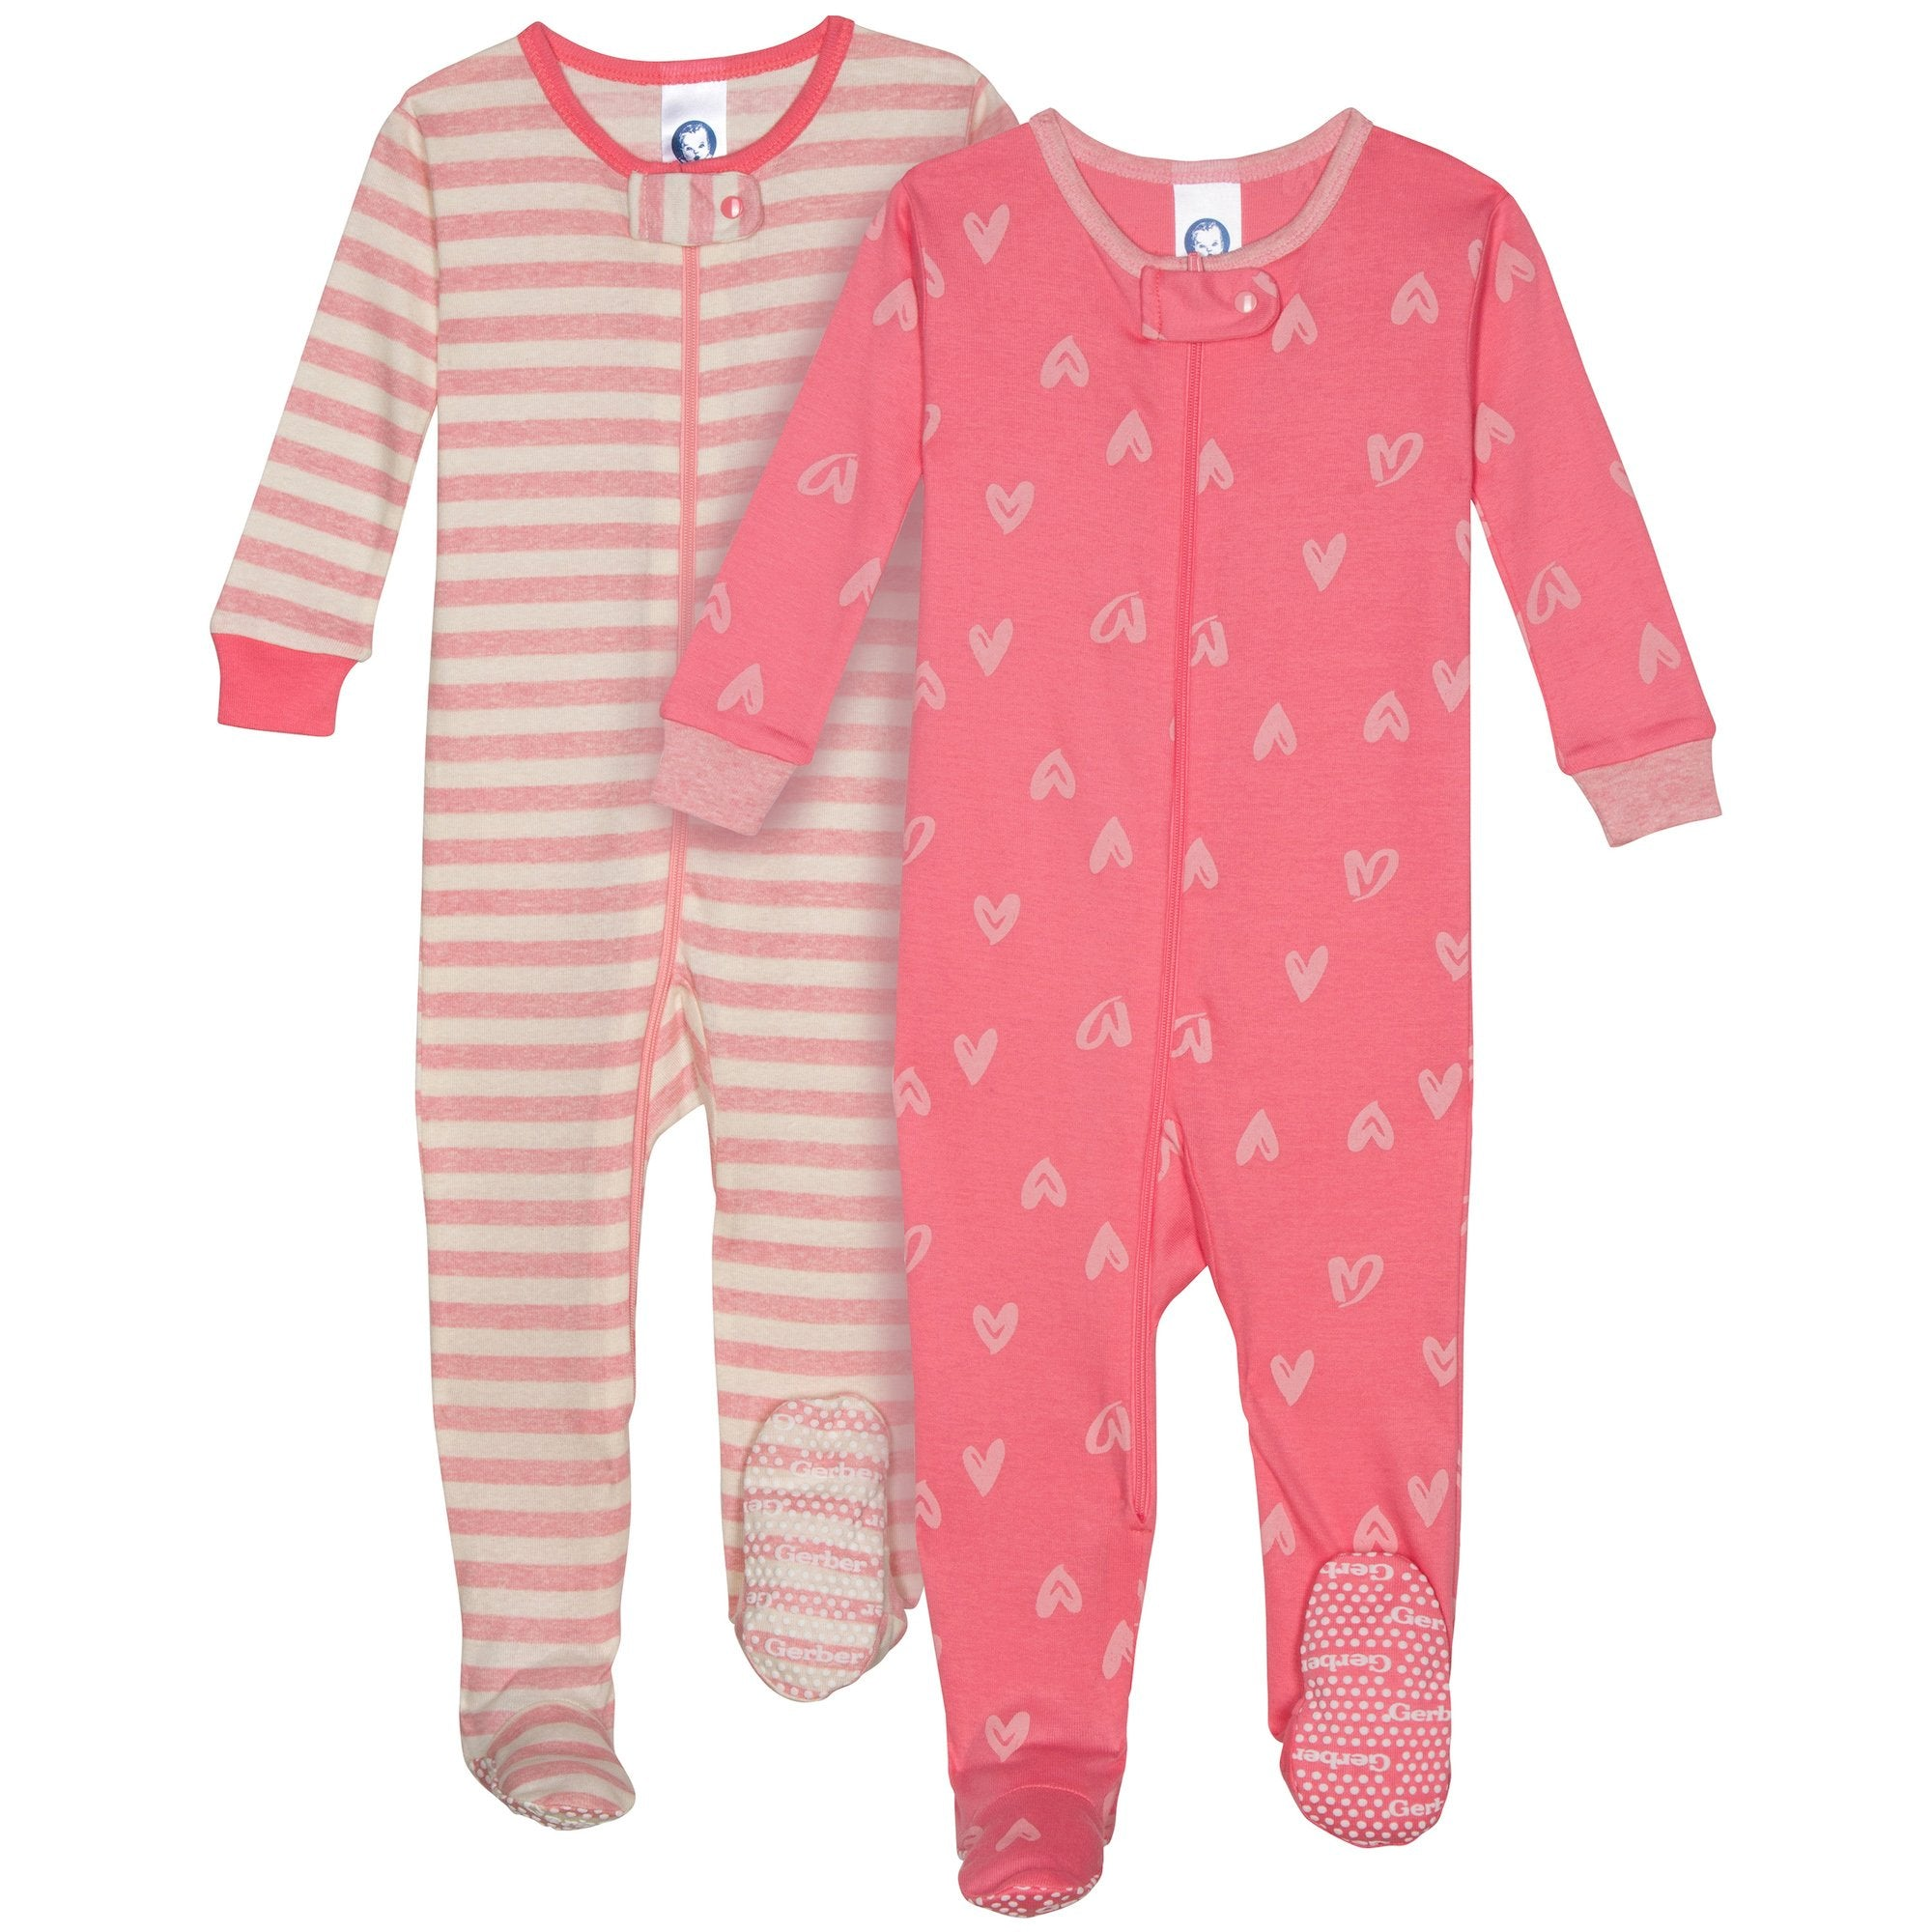 2-Pack Girls Organic Footed Heart Pajamas-Gerber Childrenswear